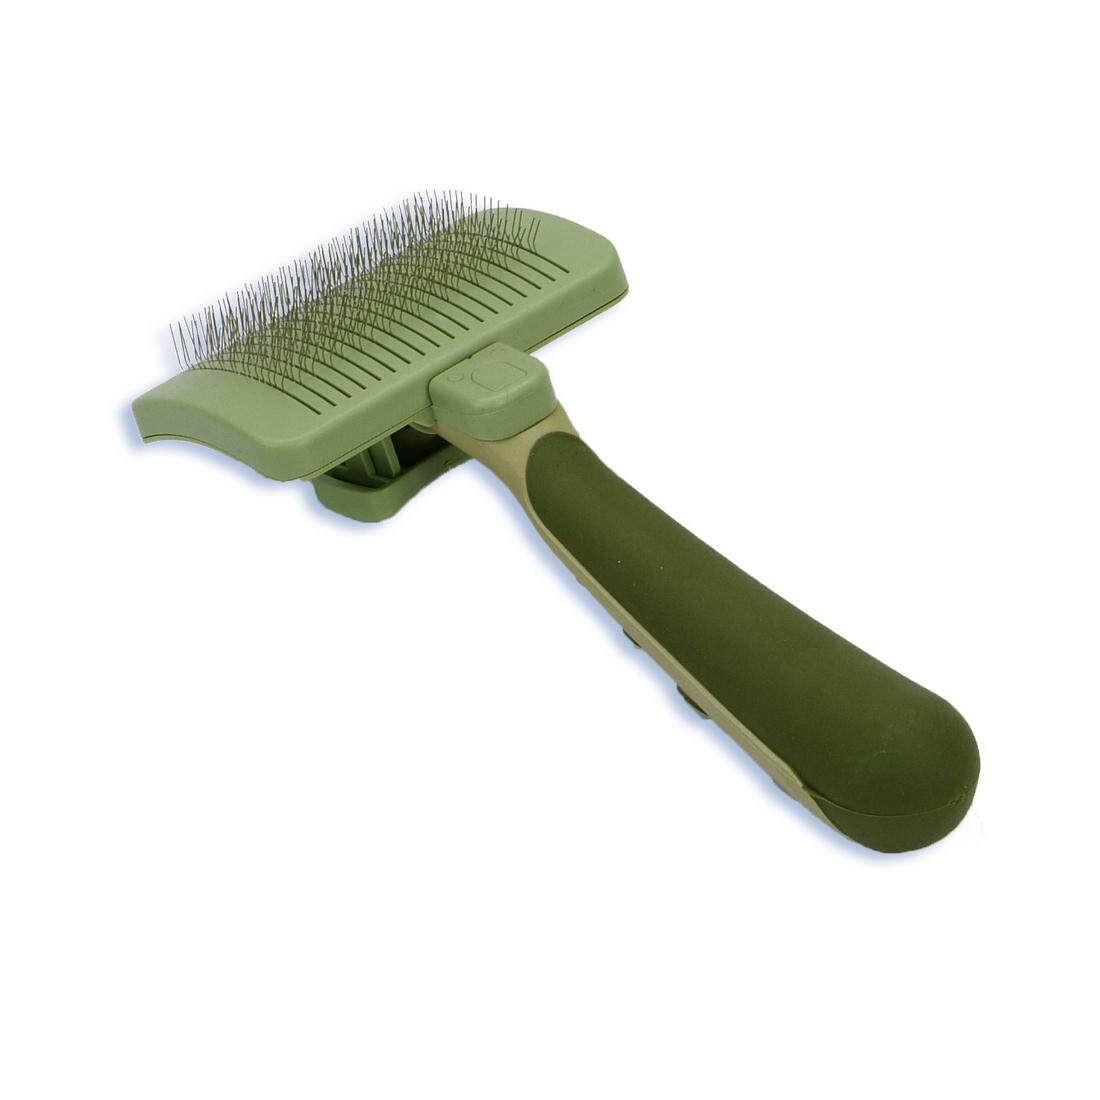 [Coastal] Safari Cat Self-Cleaning Slicker Brush